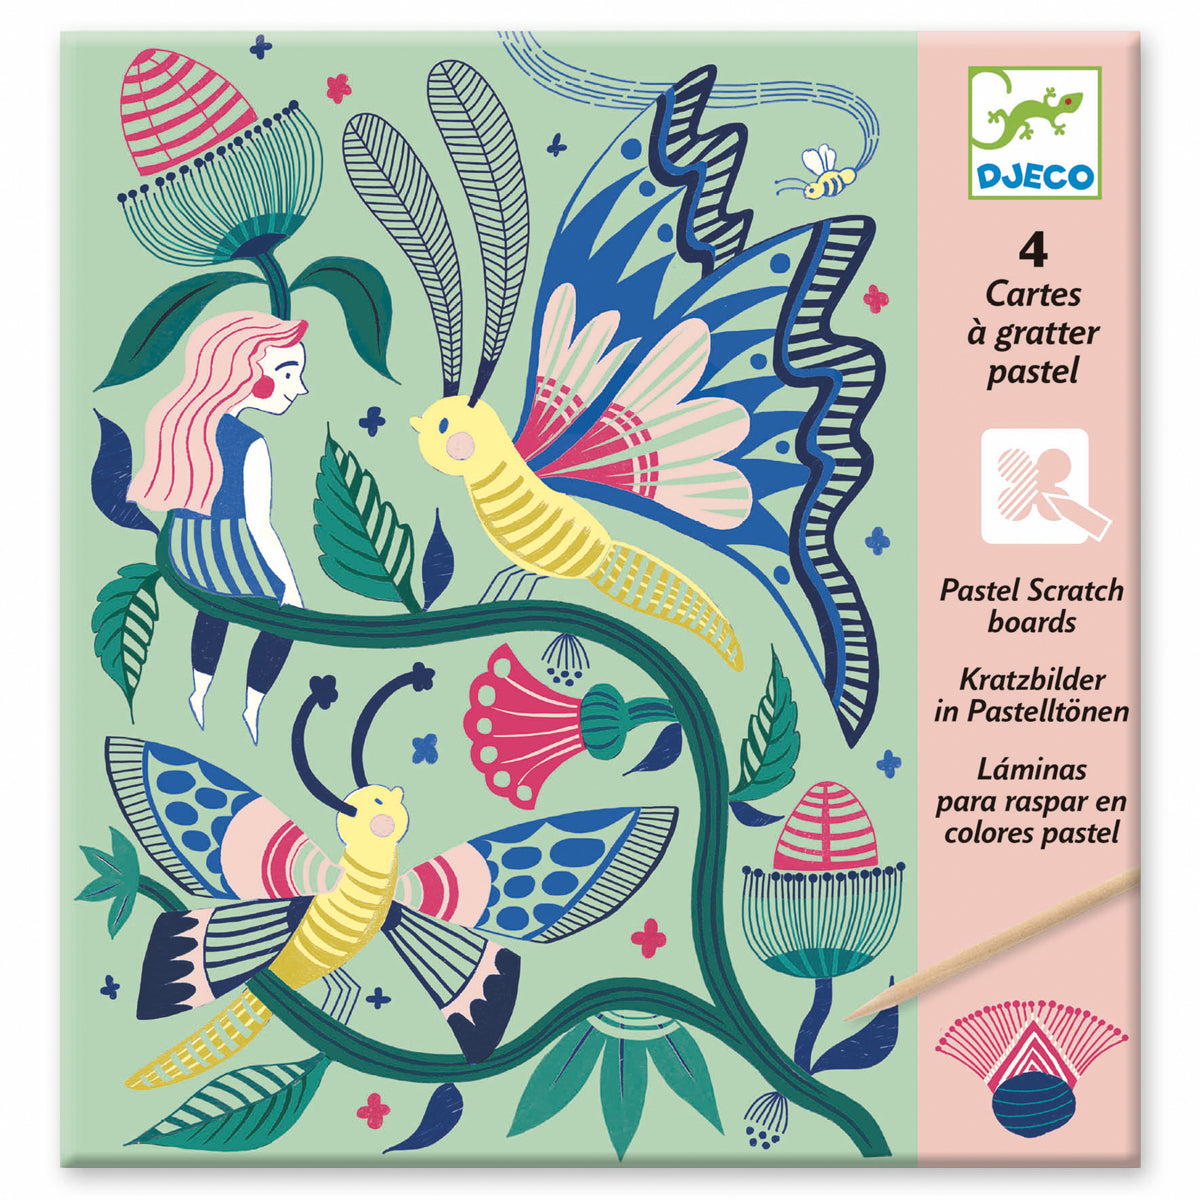 Pastel Scratch Cards Djeco Fantasy Garden small gifts 3-6 years